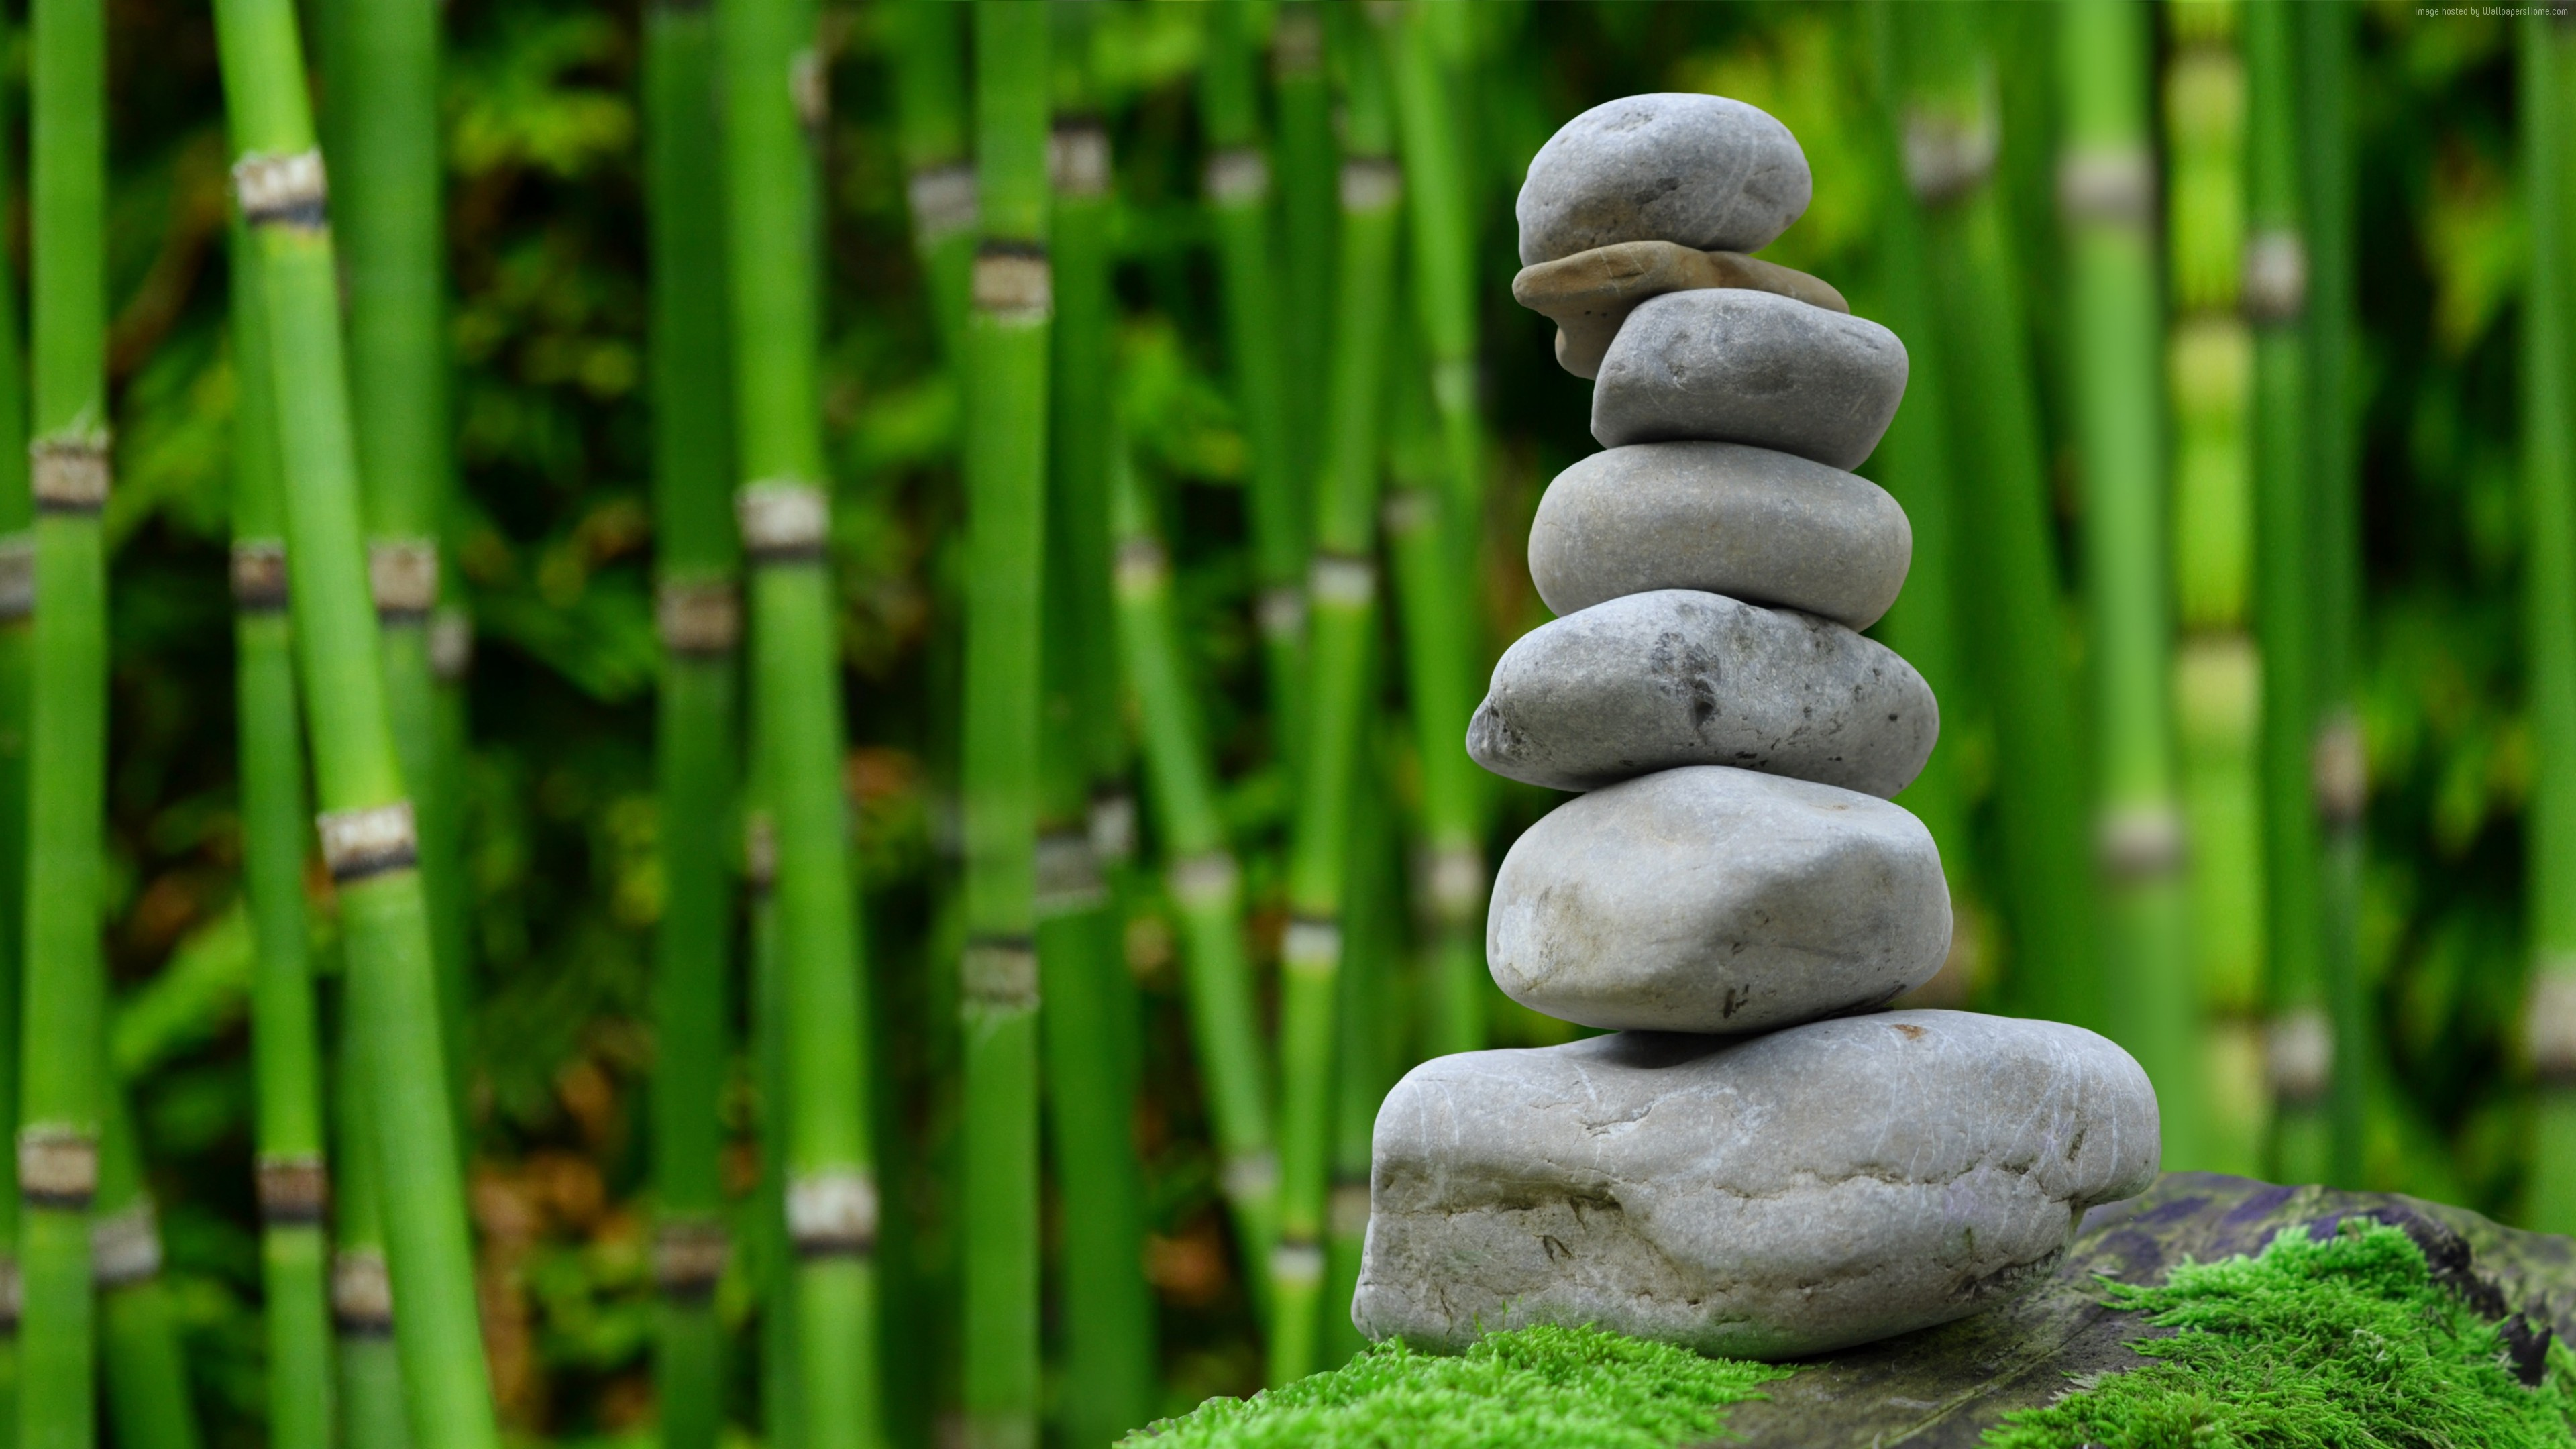 Stock Images stones, bamboo, green, 4k, Stock Images